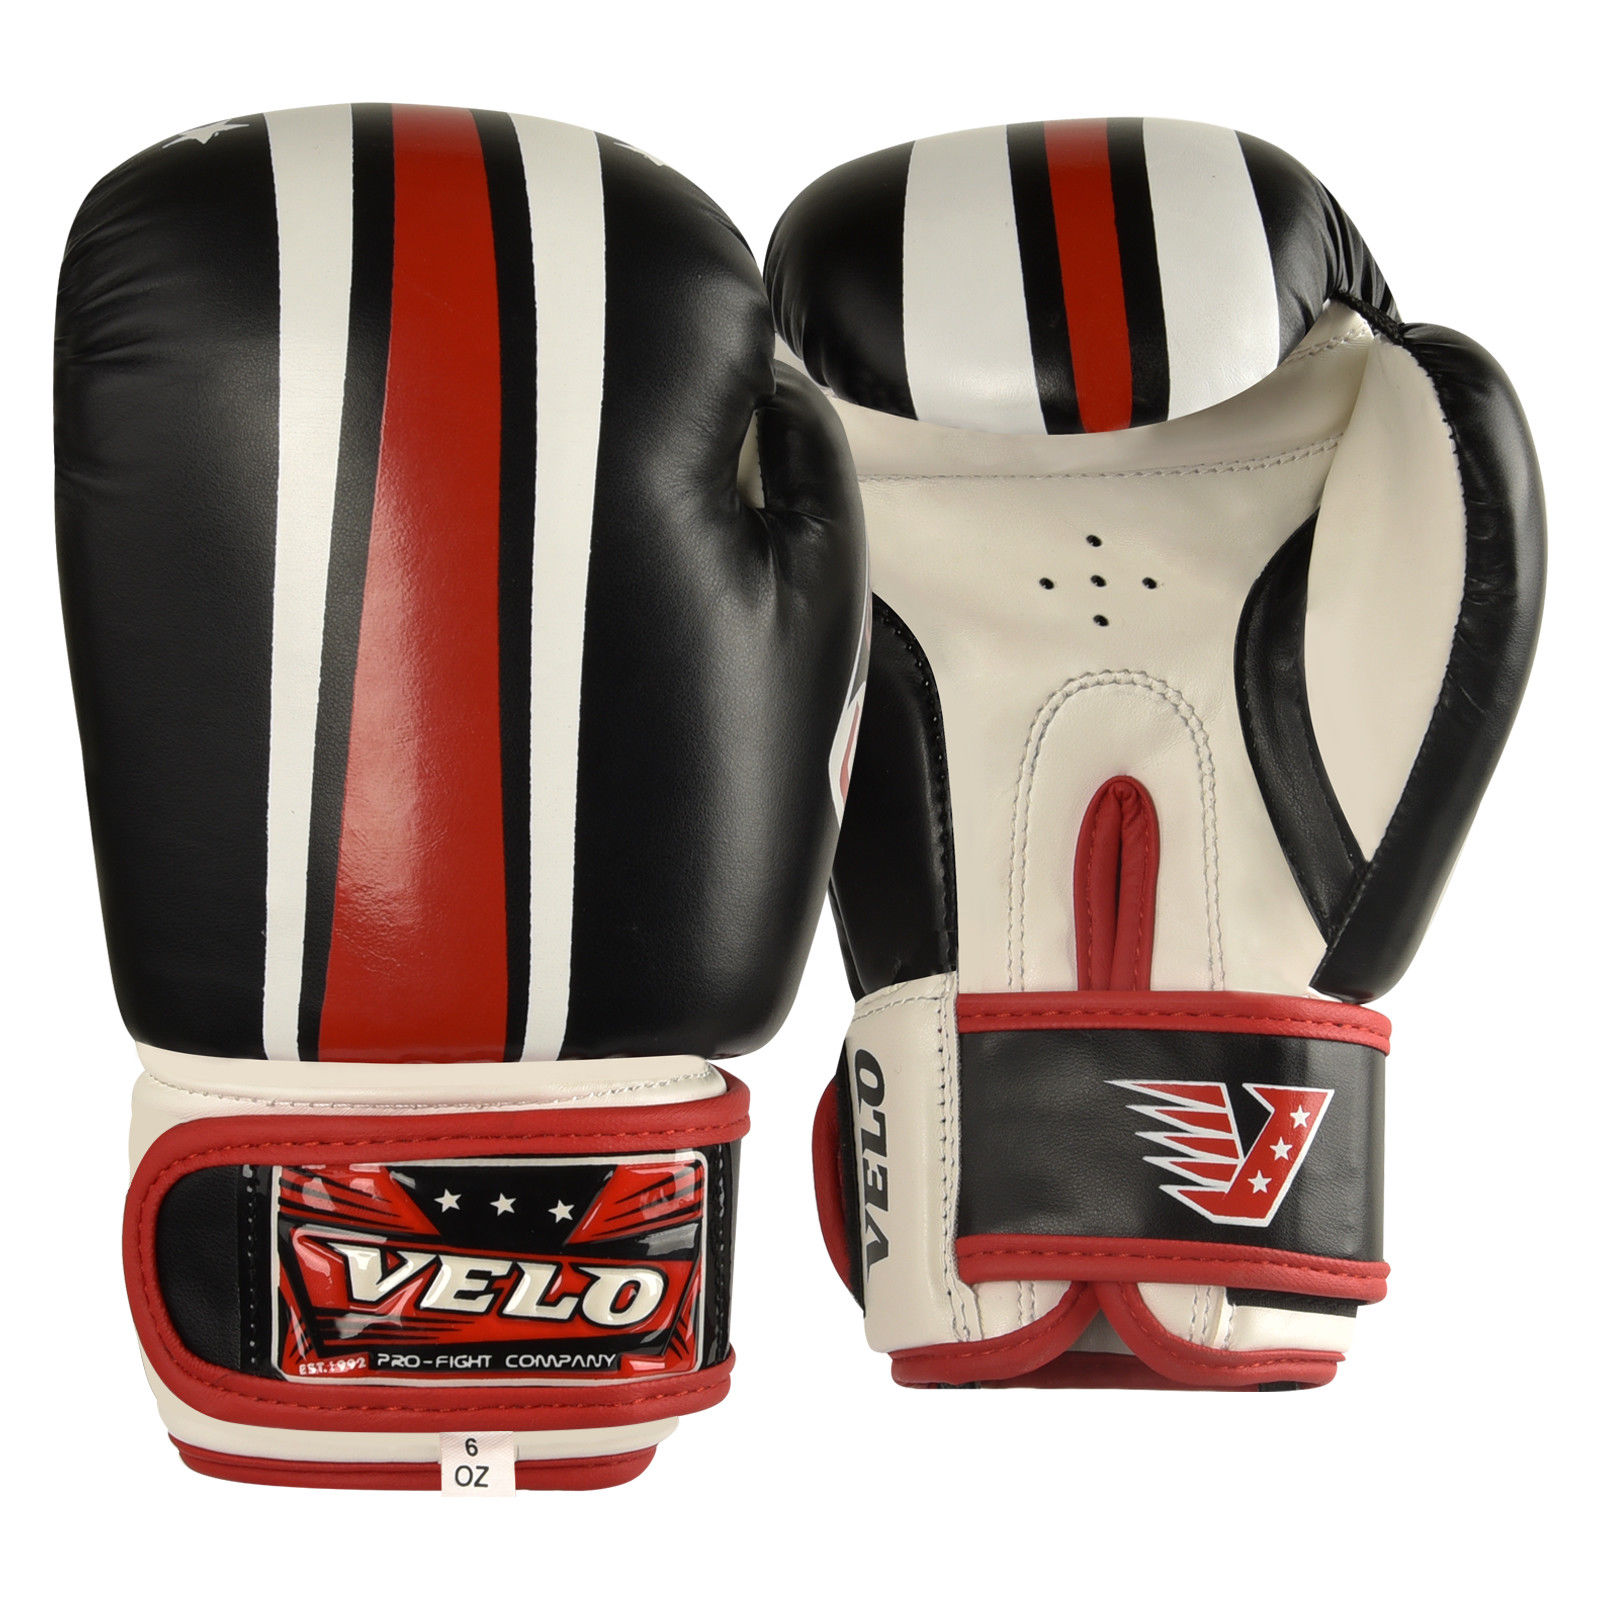 VELO Boxing Gloves - Red-White